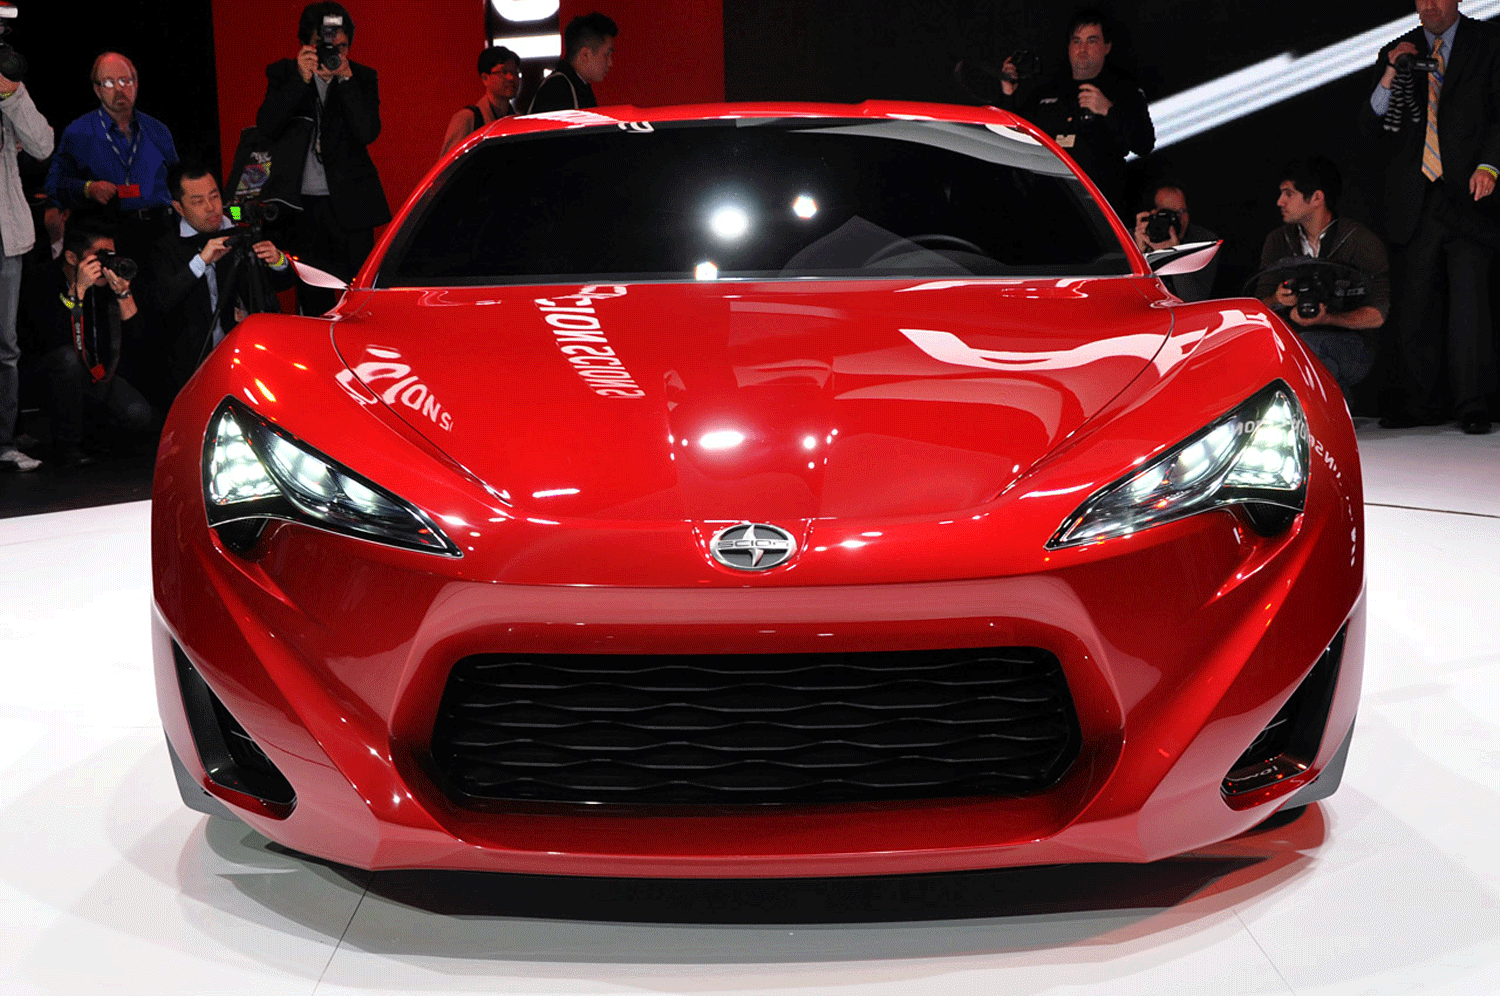 scion fr toyota 86 gt concept frs sport front cars interior bumper specs specification sports slideshow rendition ft another tc